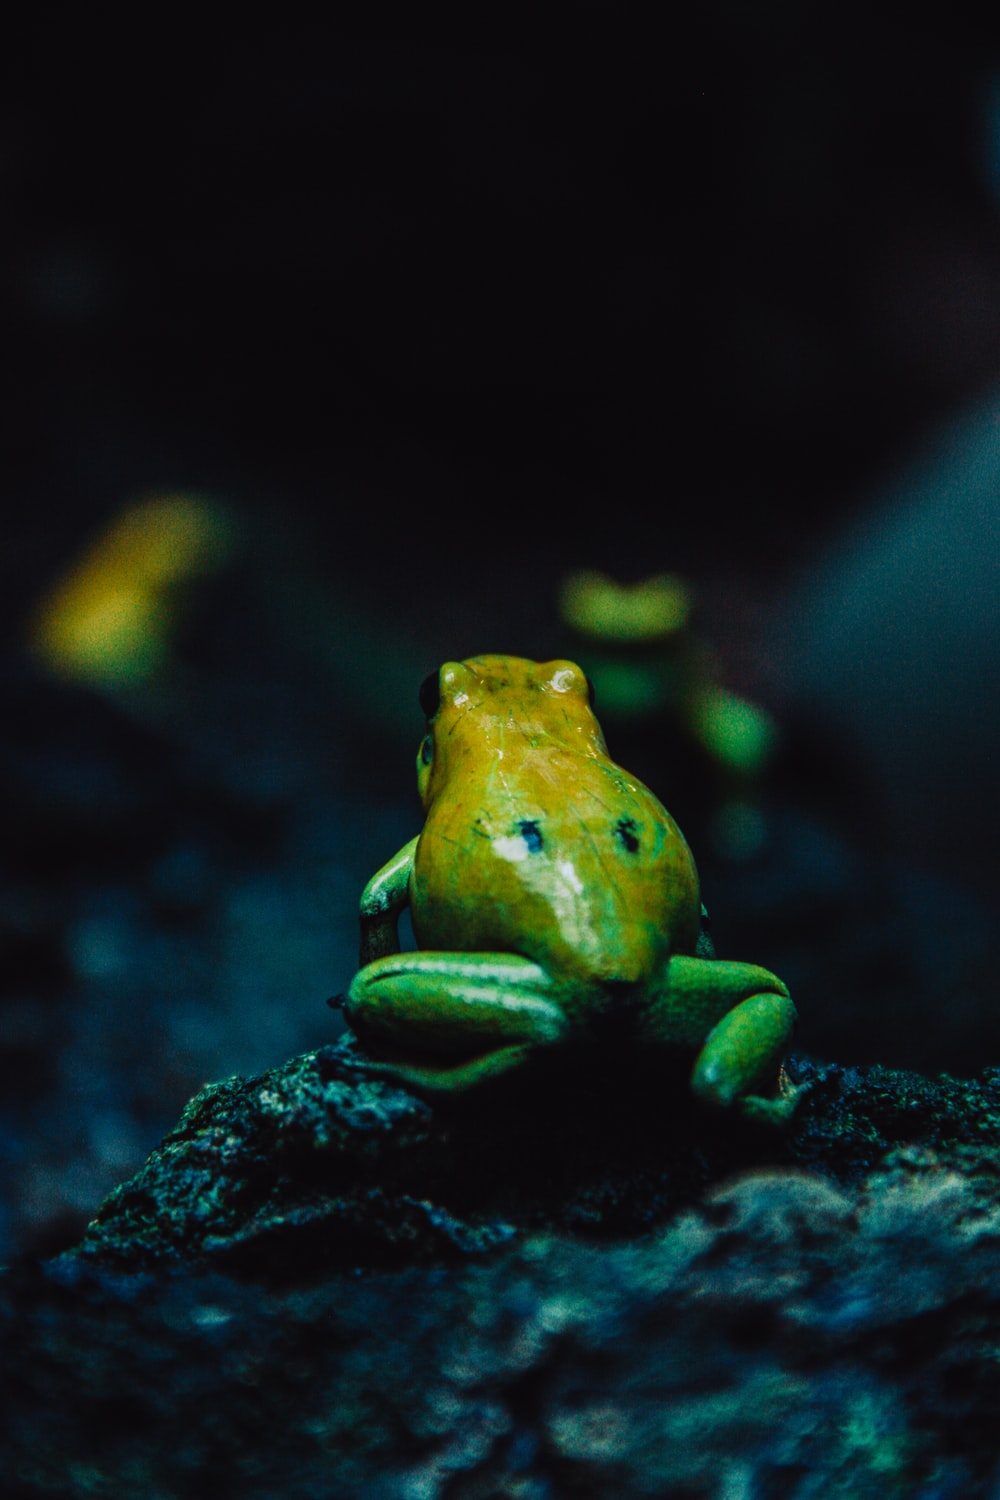 green and yellow frog on gray rock